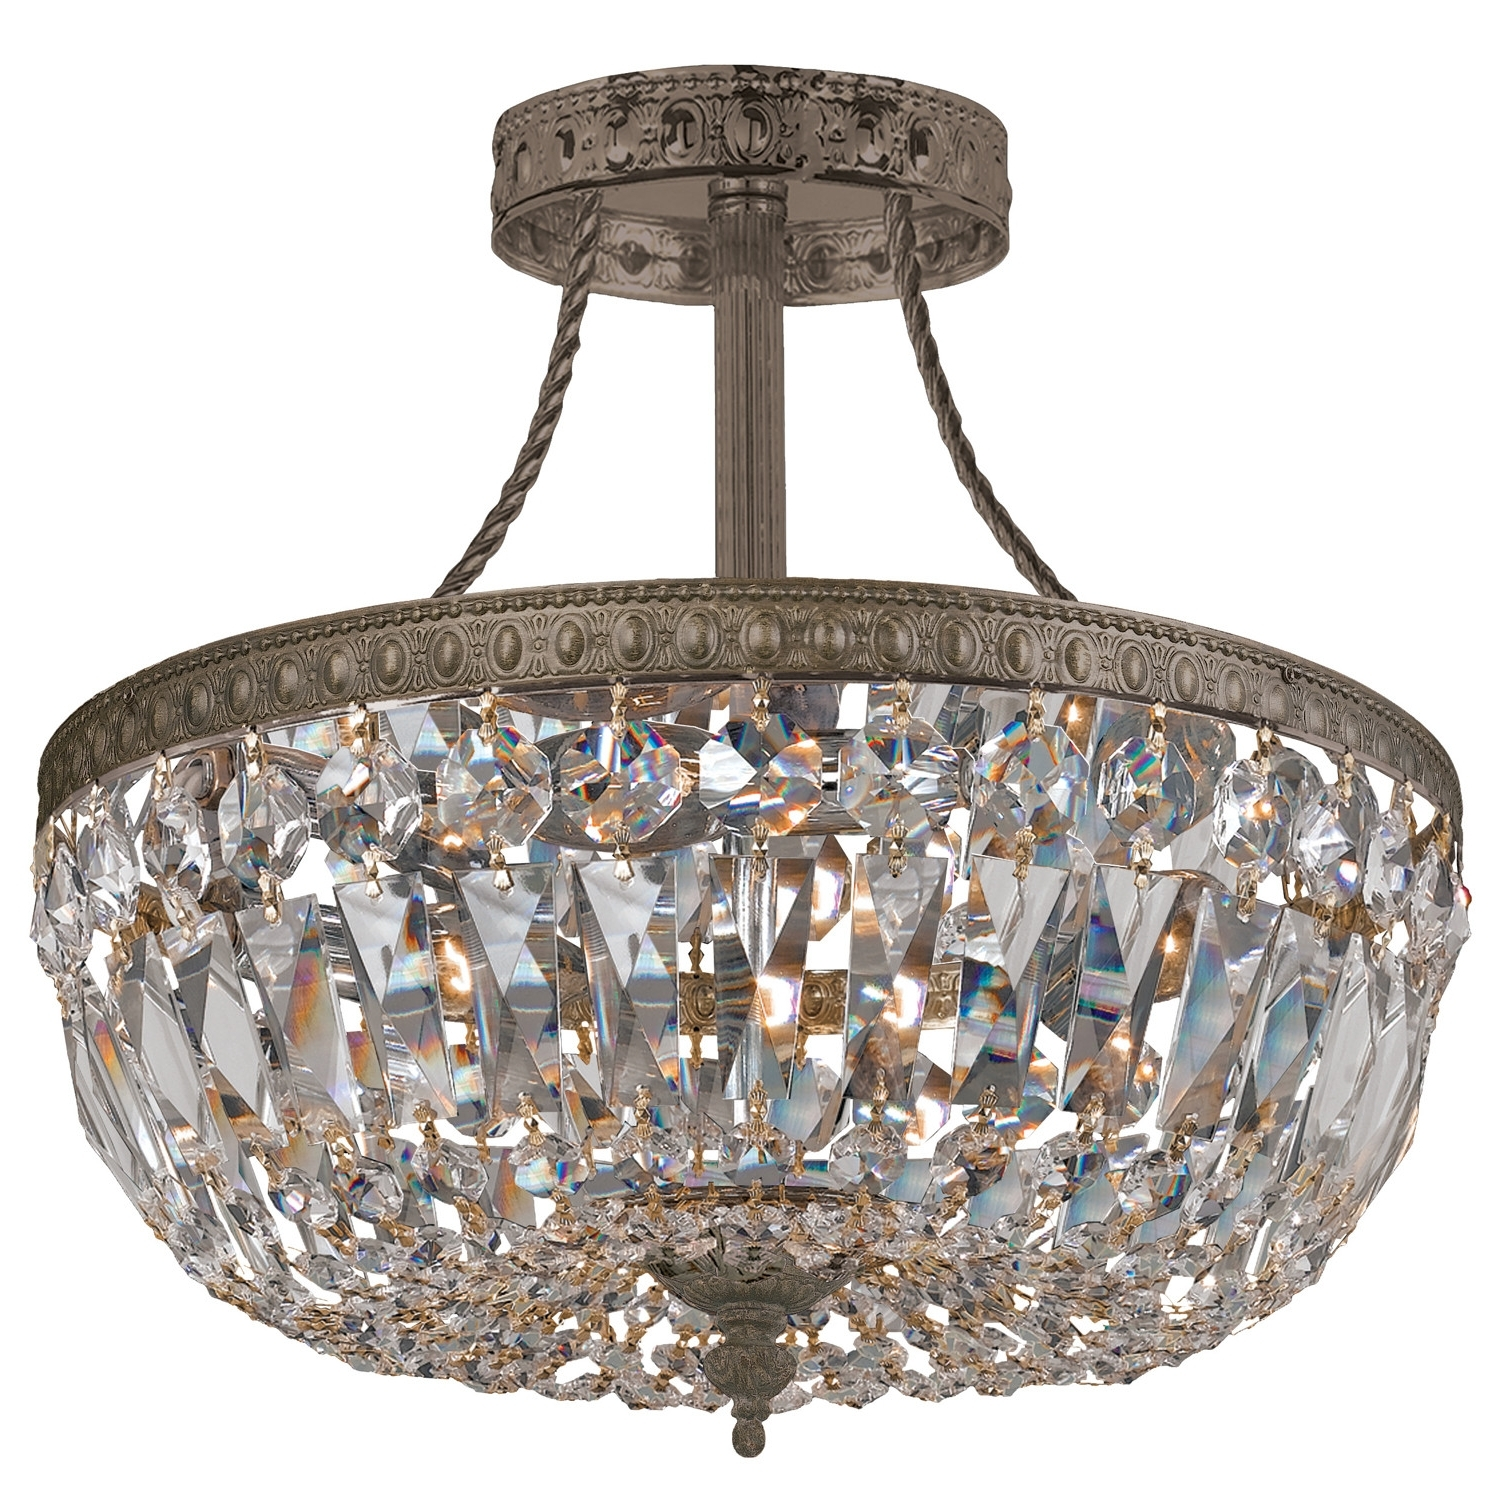 Newest Crystal Flush Mount Chandelier – Espan In Wall Mount Crystal Chandeliers (View 8 of 15)